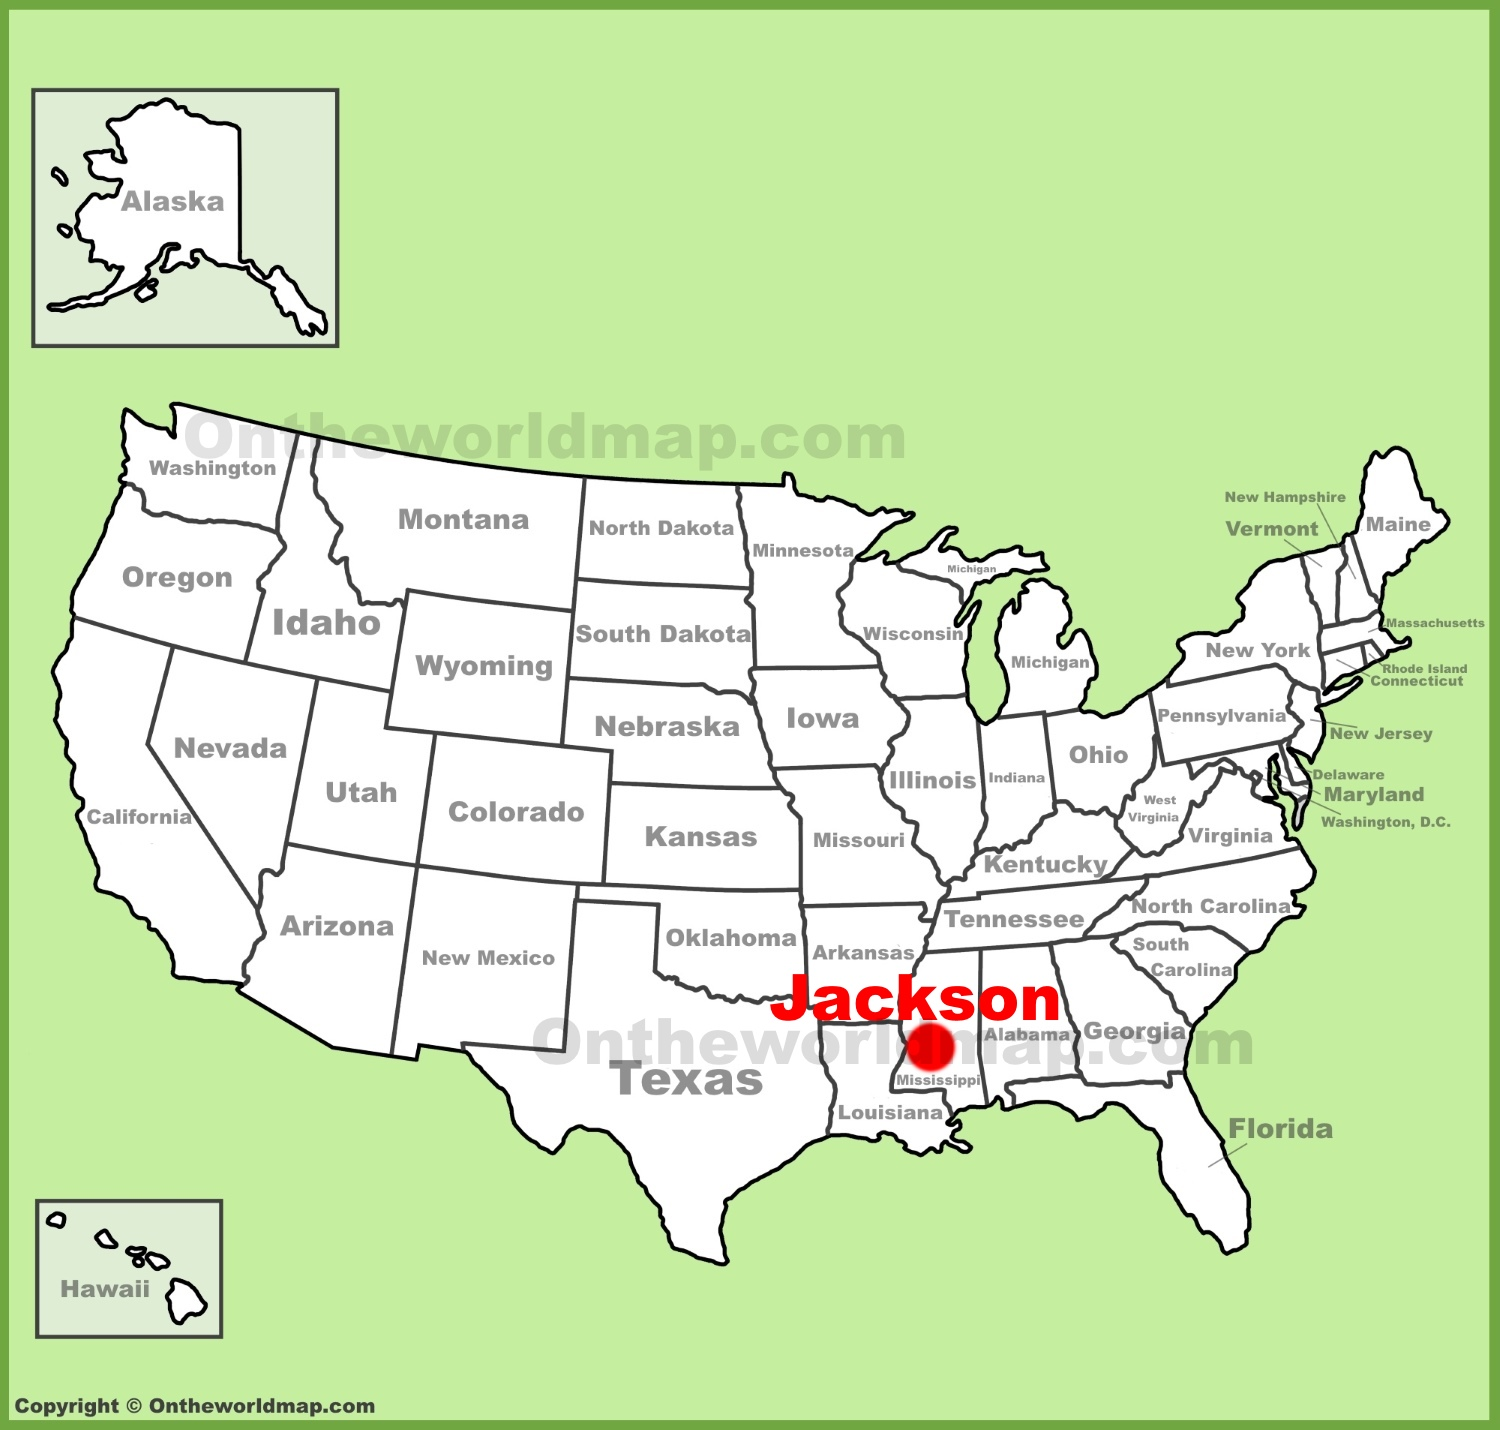 Jackson location on the US Map